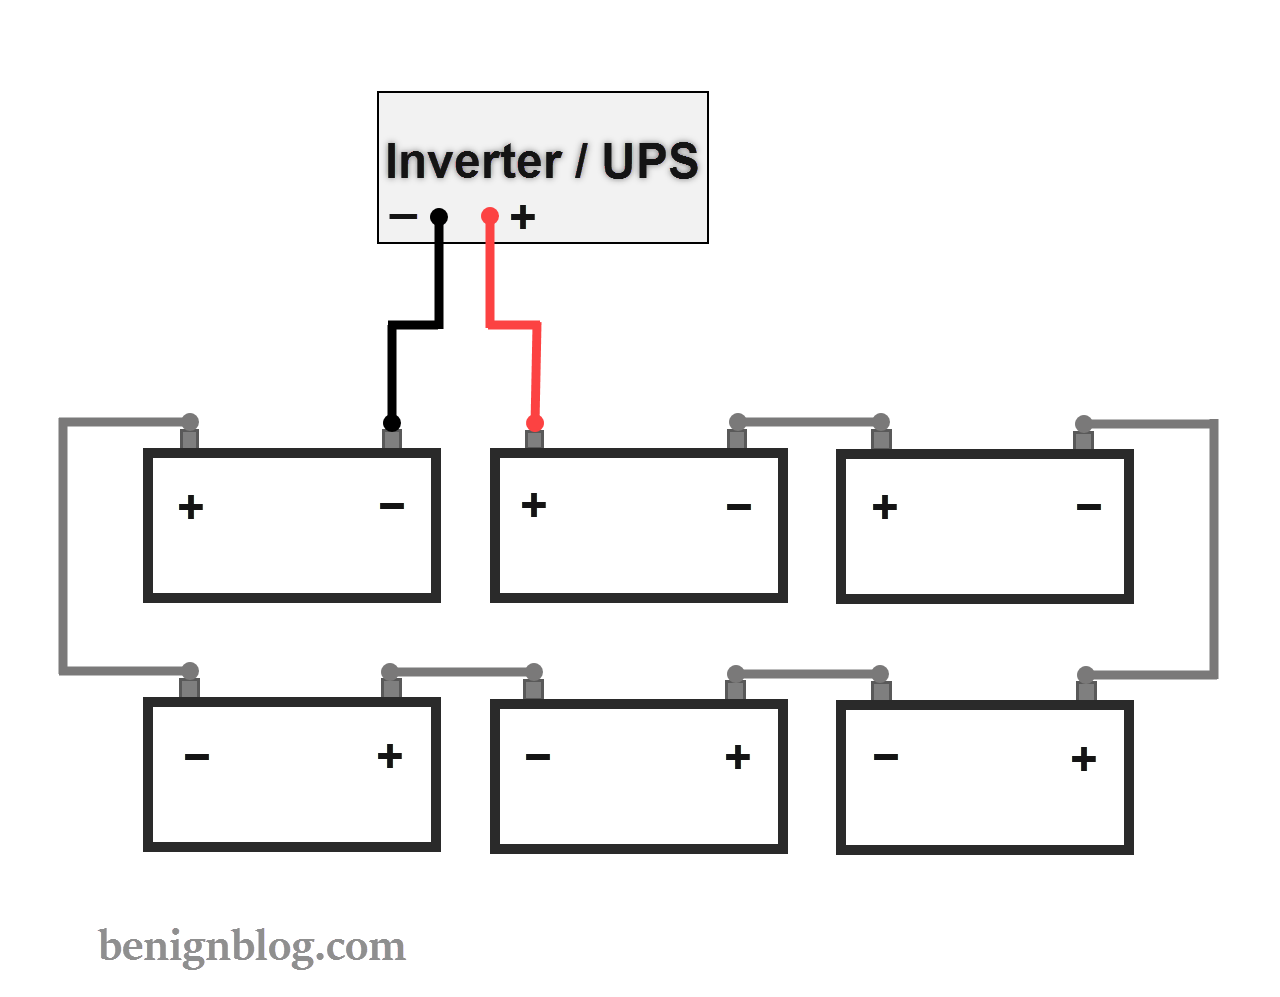 medium resolution of how to connect batteries in series with power inverter or ups battery terminal wiring diagram